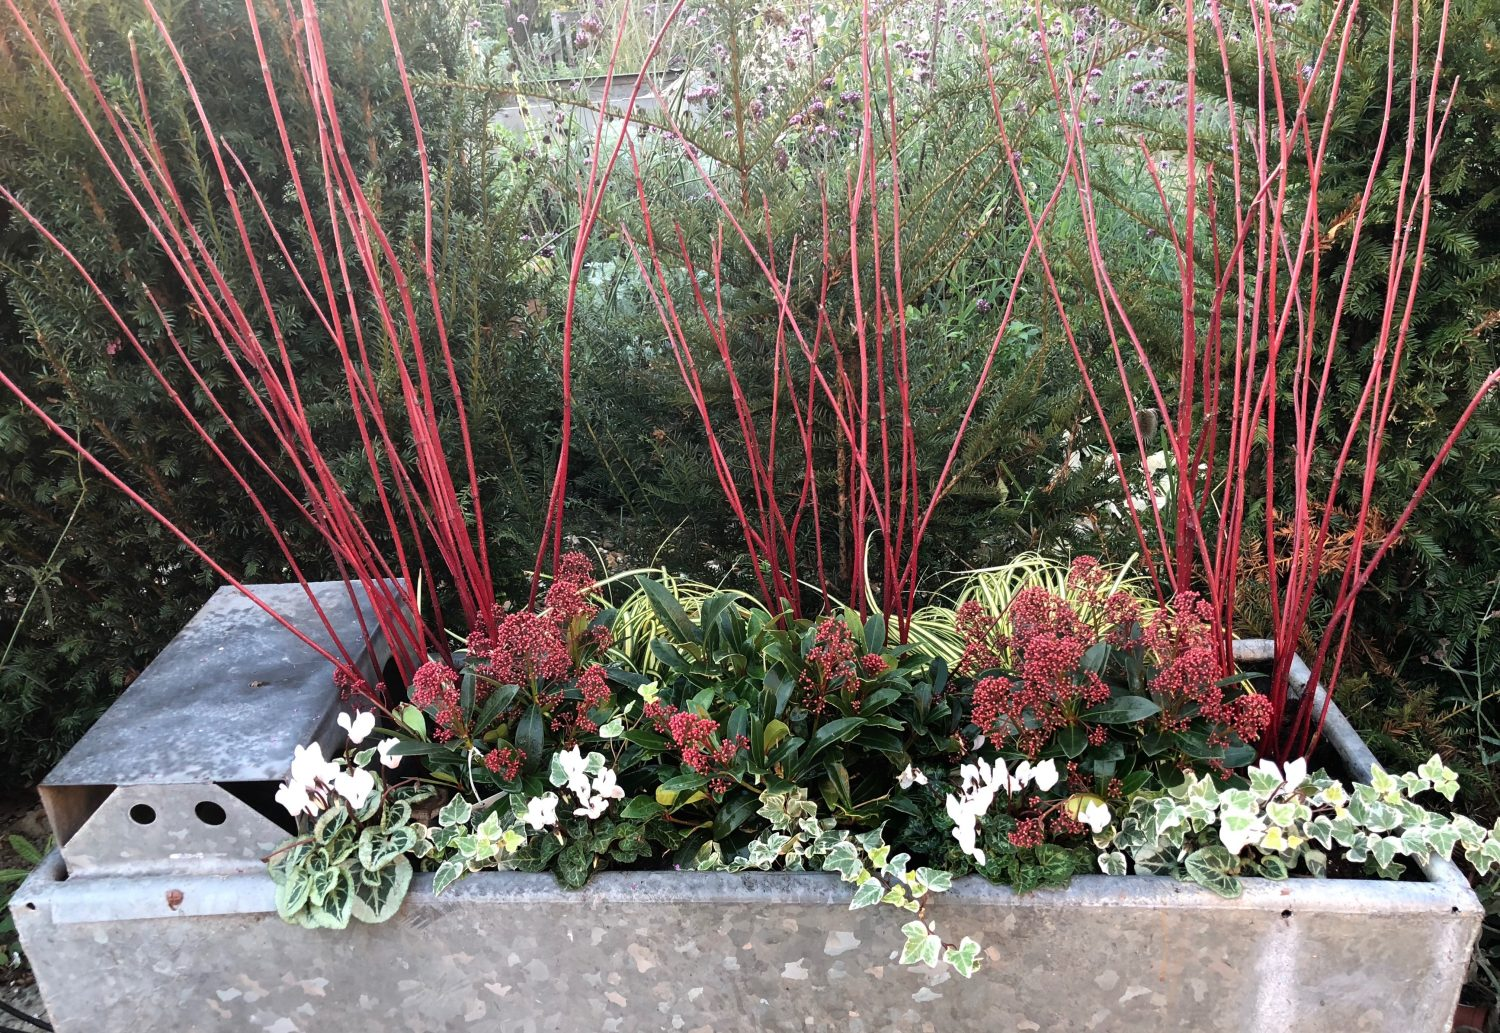 Dogwood stems in a winter container